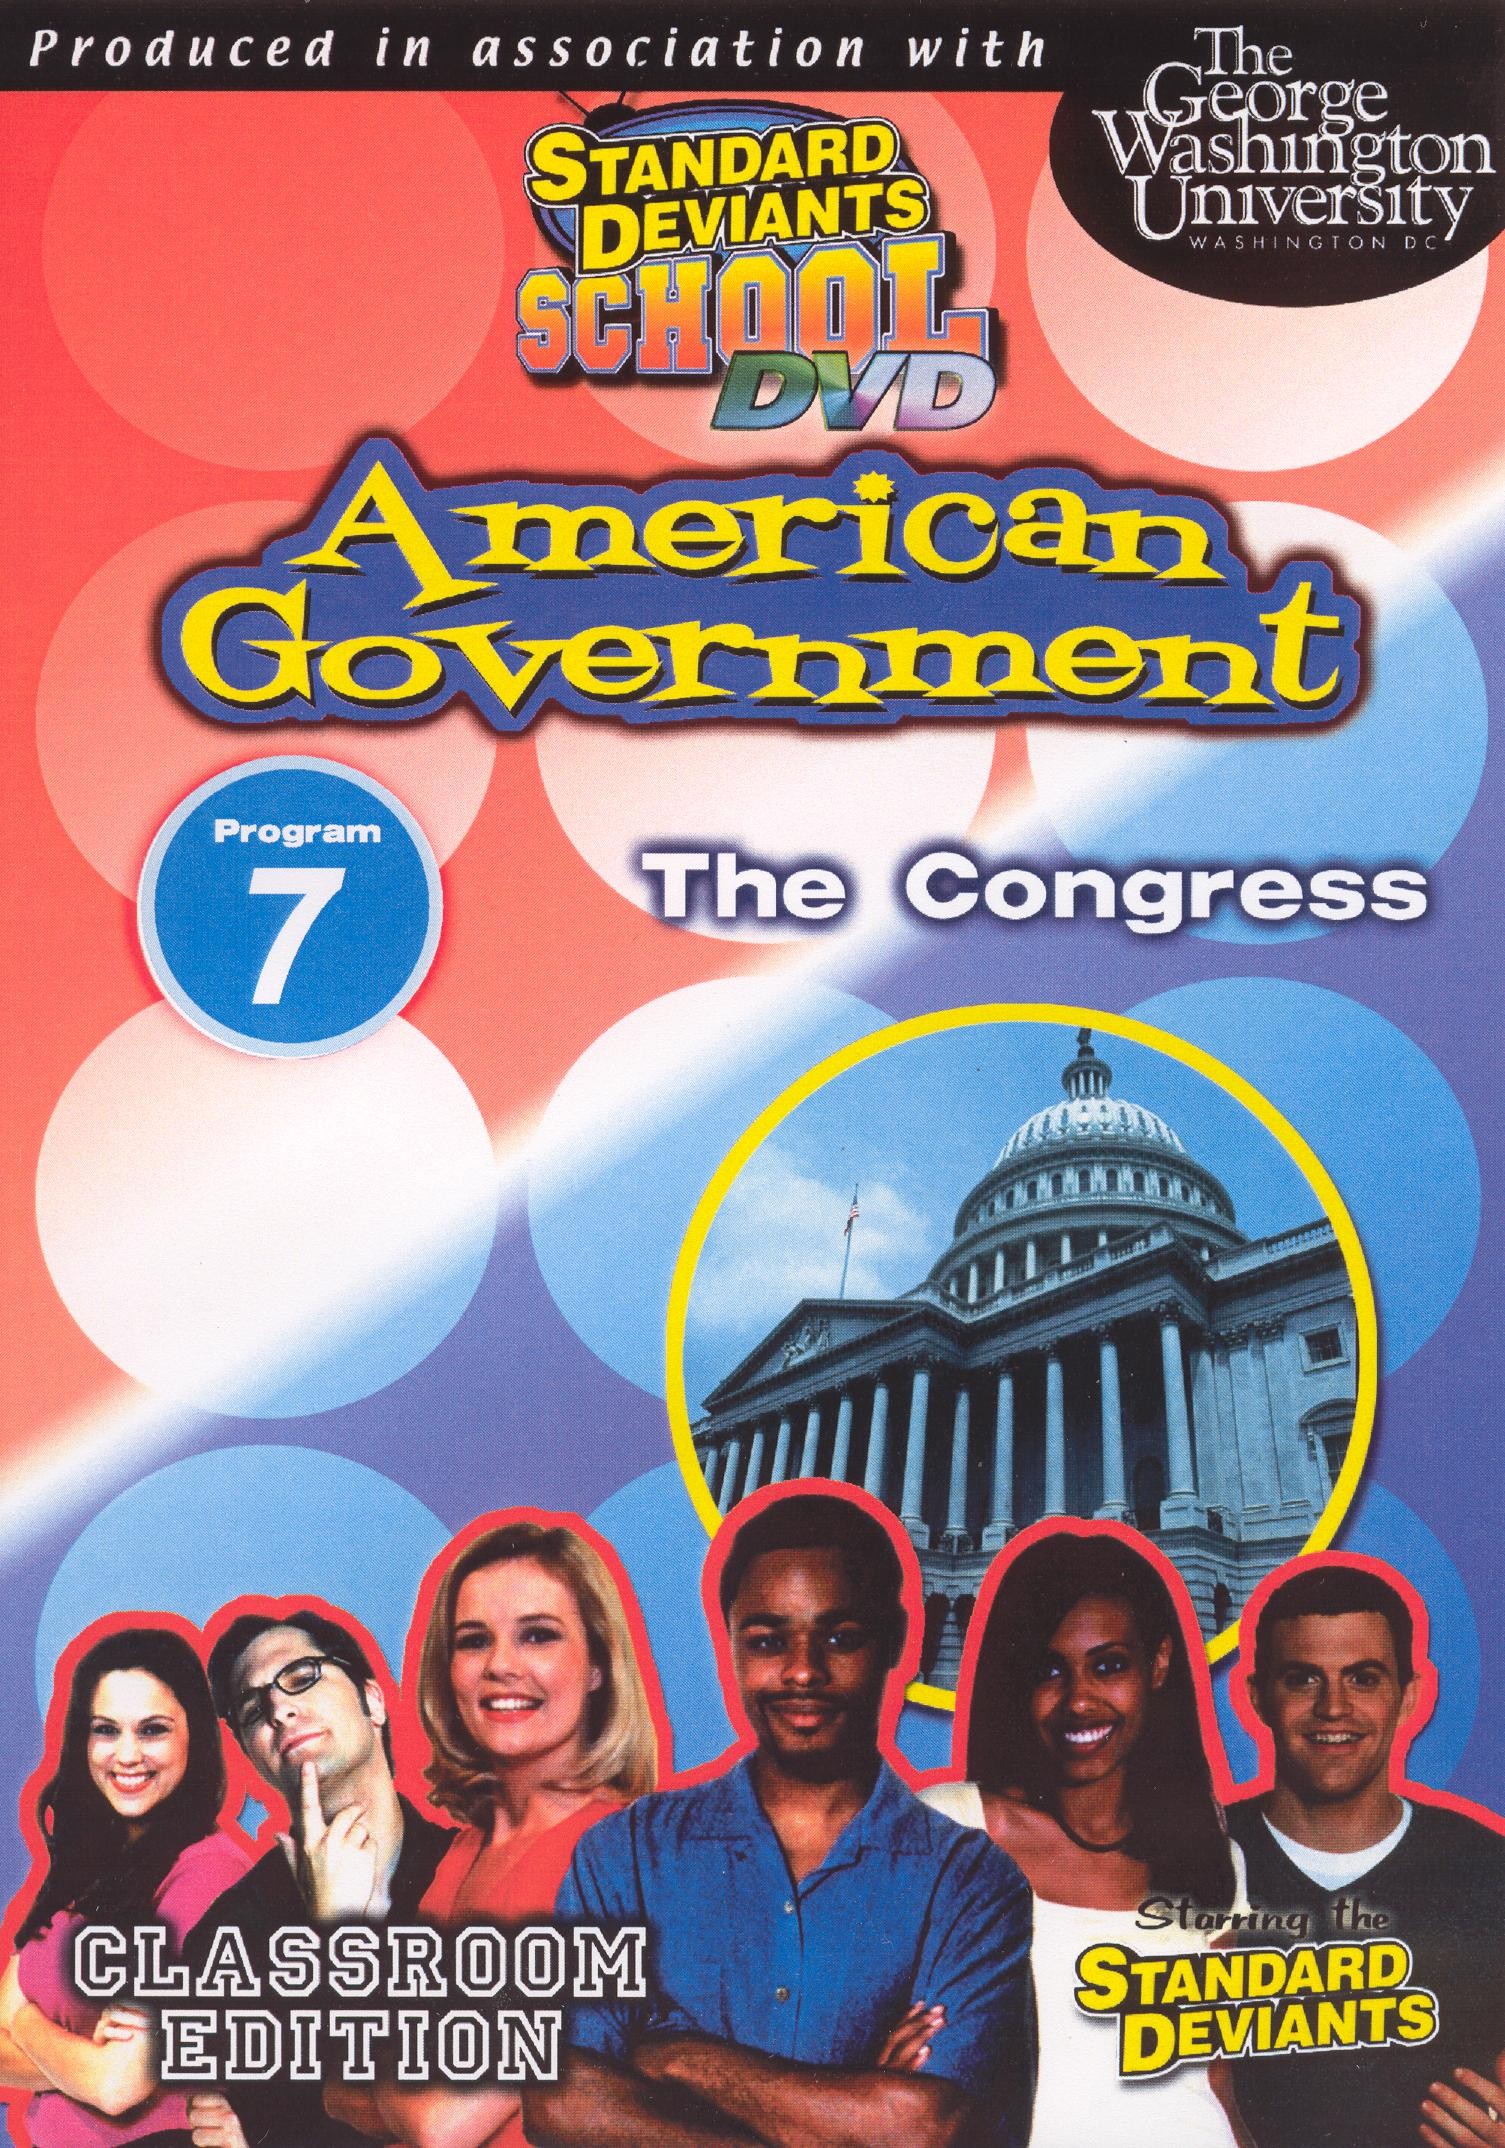 Standard Deviants School: American Government, Module 7 - The Congress